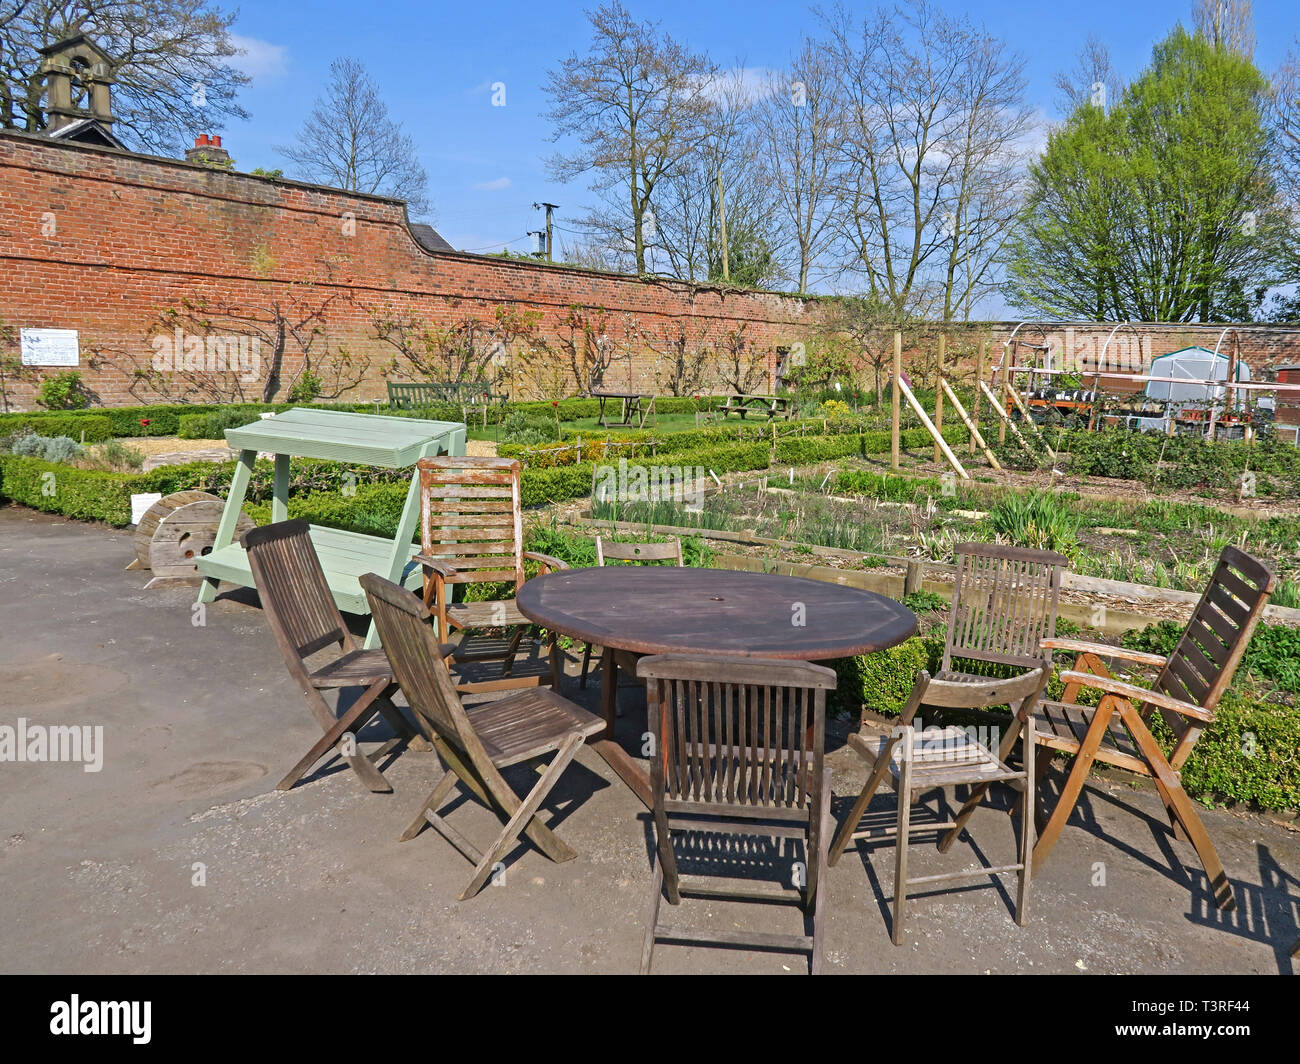 Interior of Walton Lea Walled Garden - Stock Image